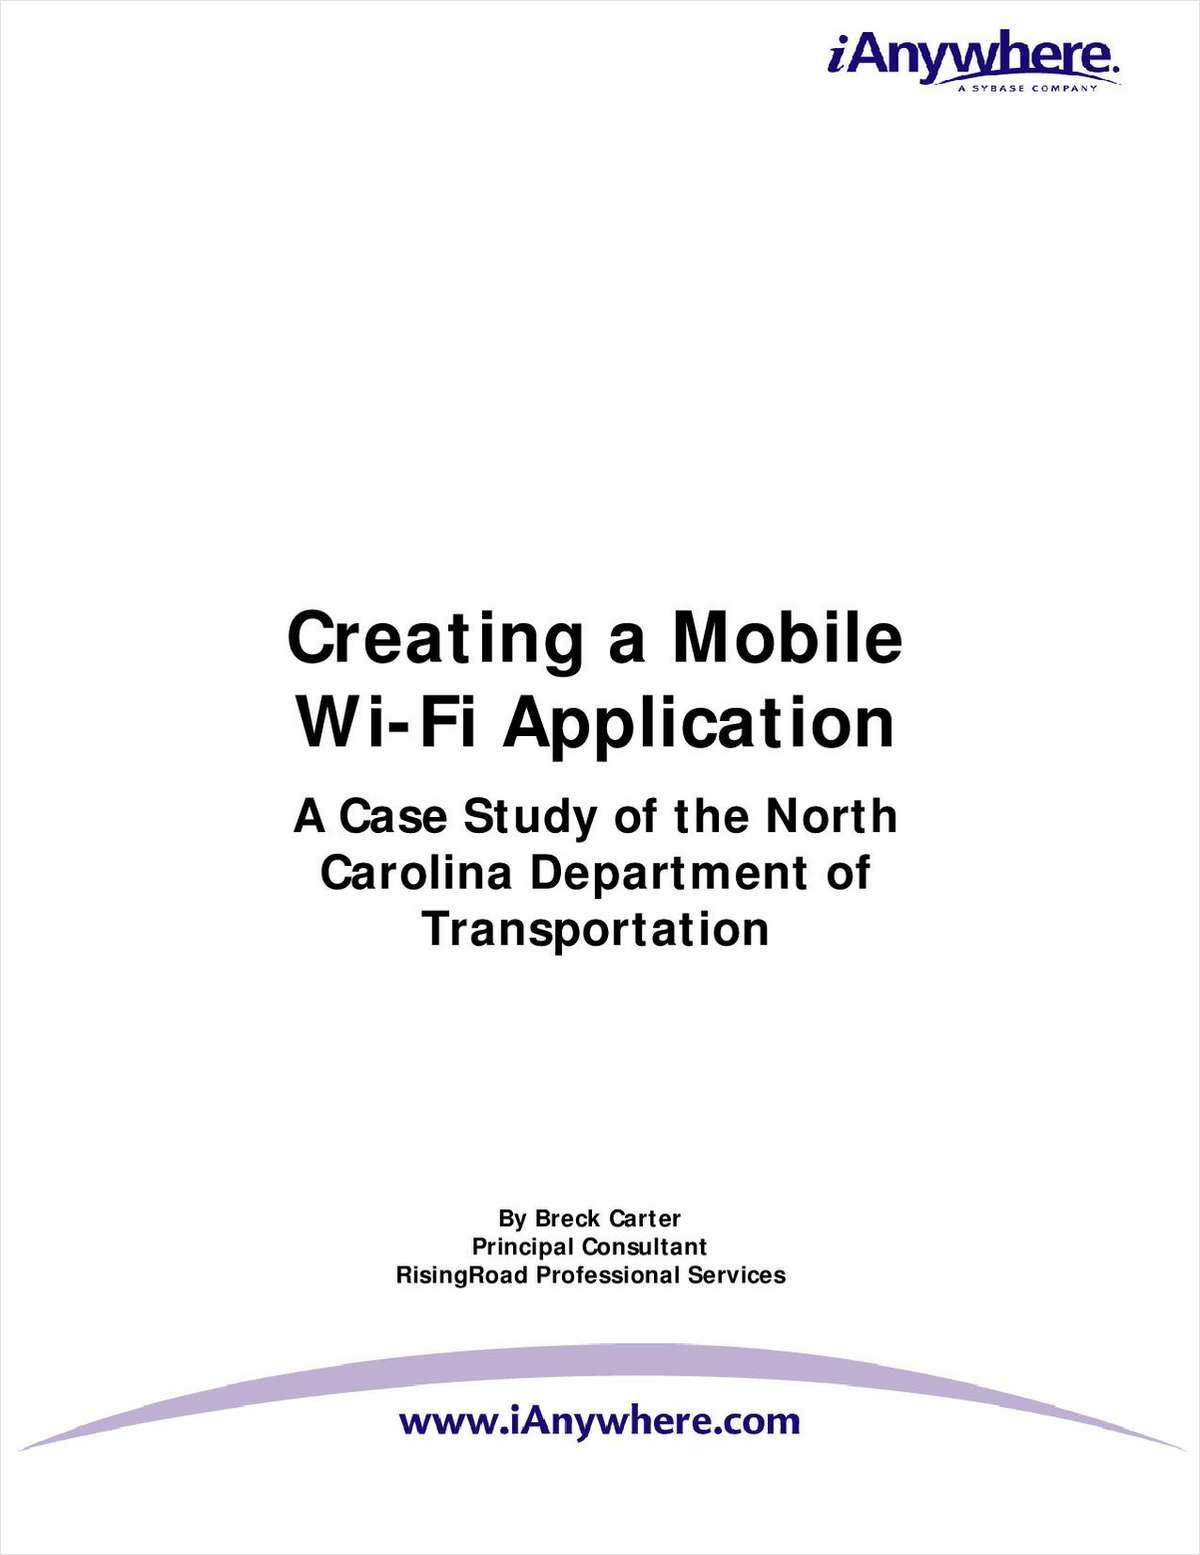 Developing a Mobile Wi-Fi Application - Case Study of the NCDOT